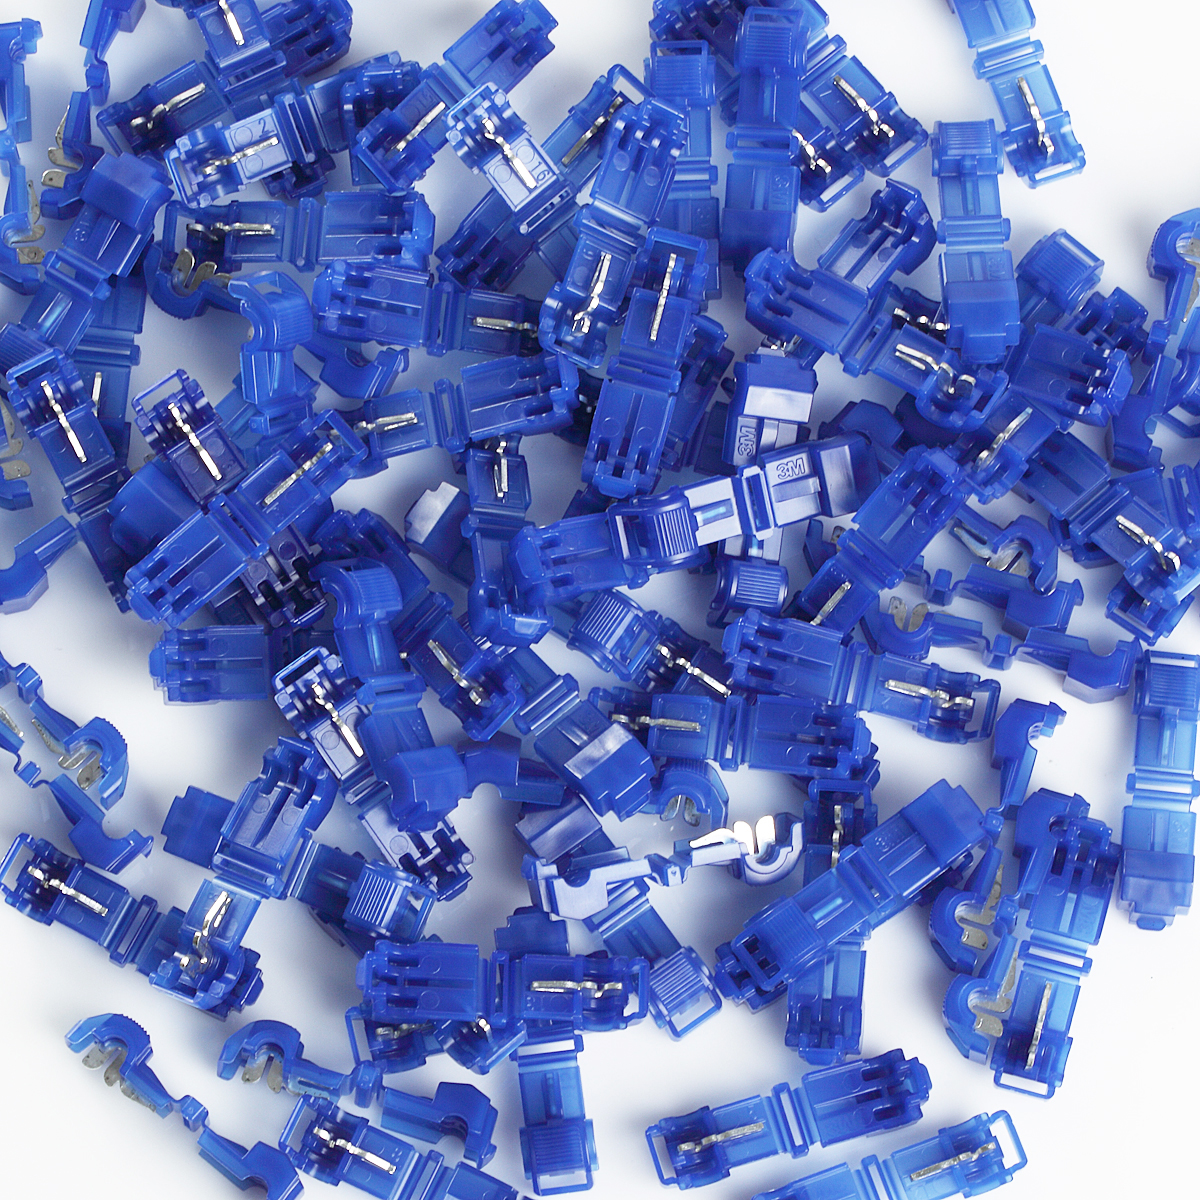 3M 952 T-TAP Quick Disconnect Wire Connector Blue 16-14 Ga Gauge Terminal 100 PCs